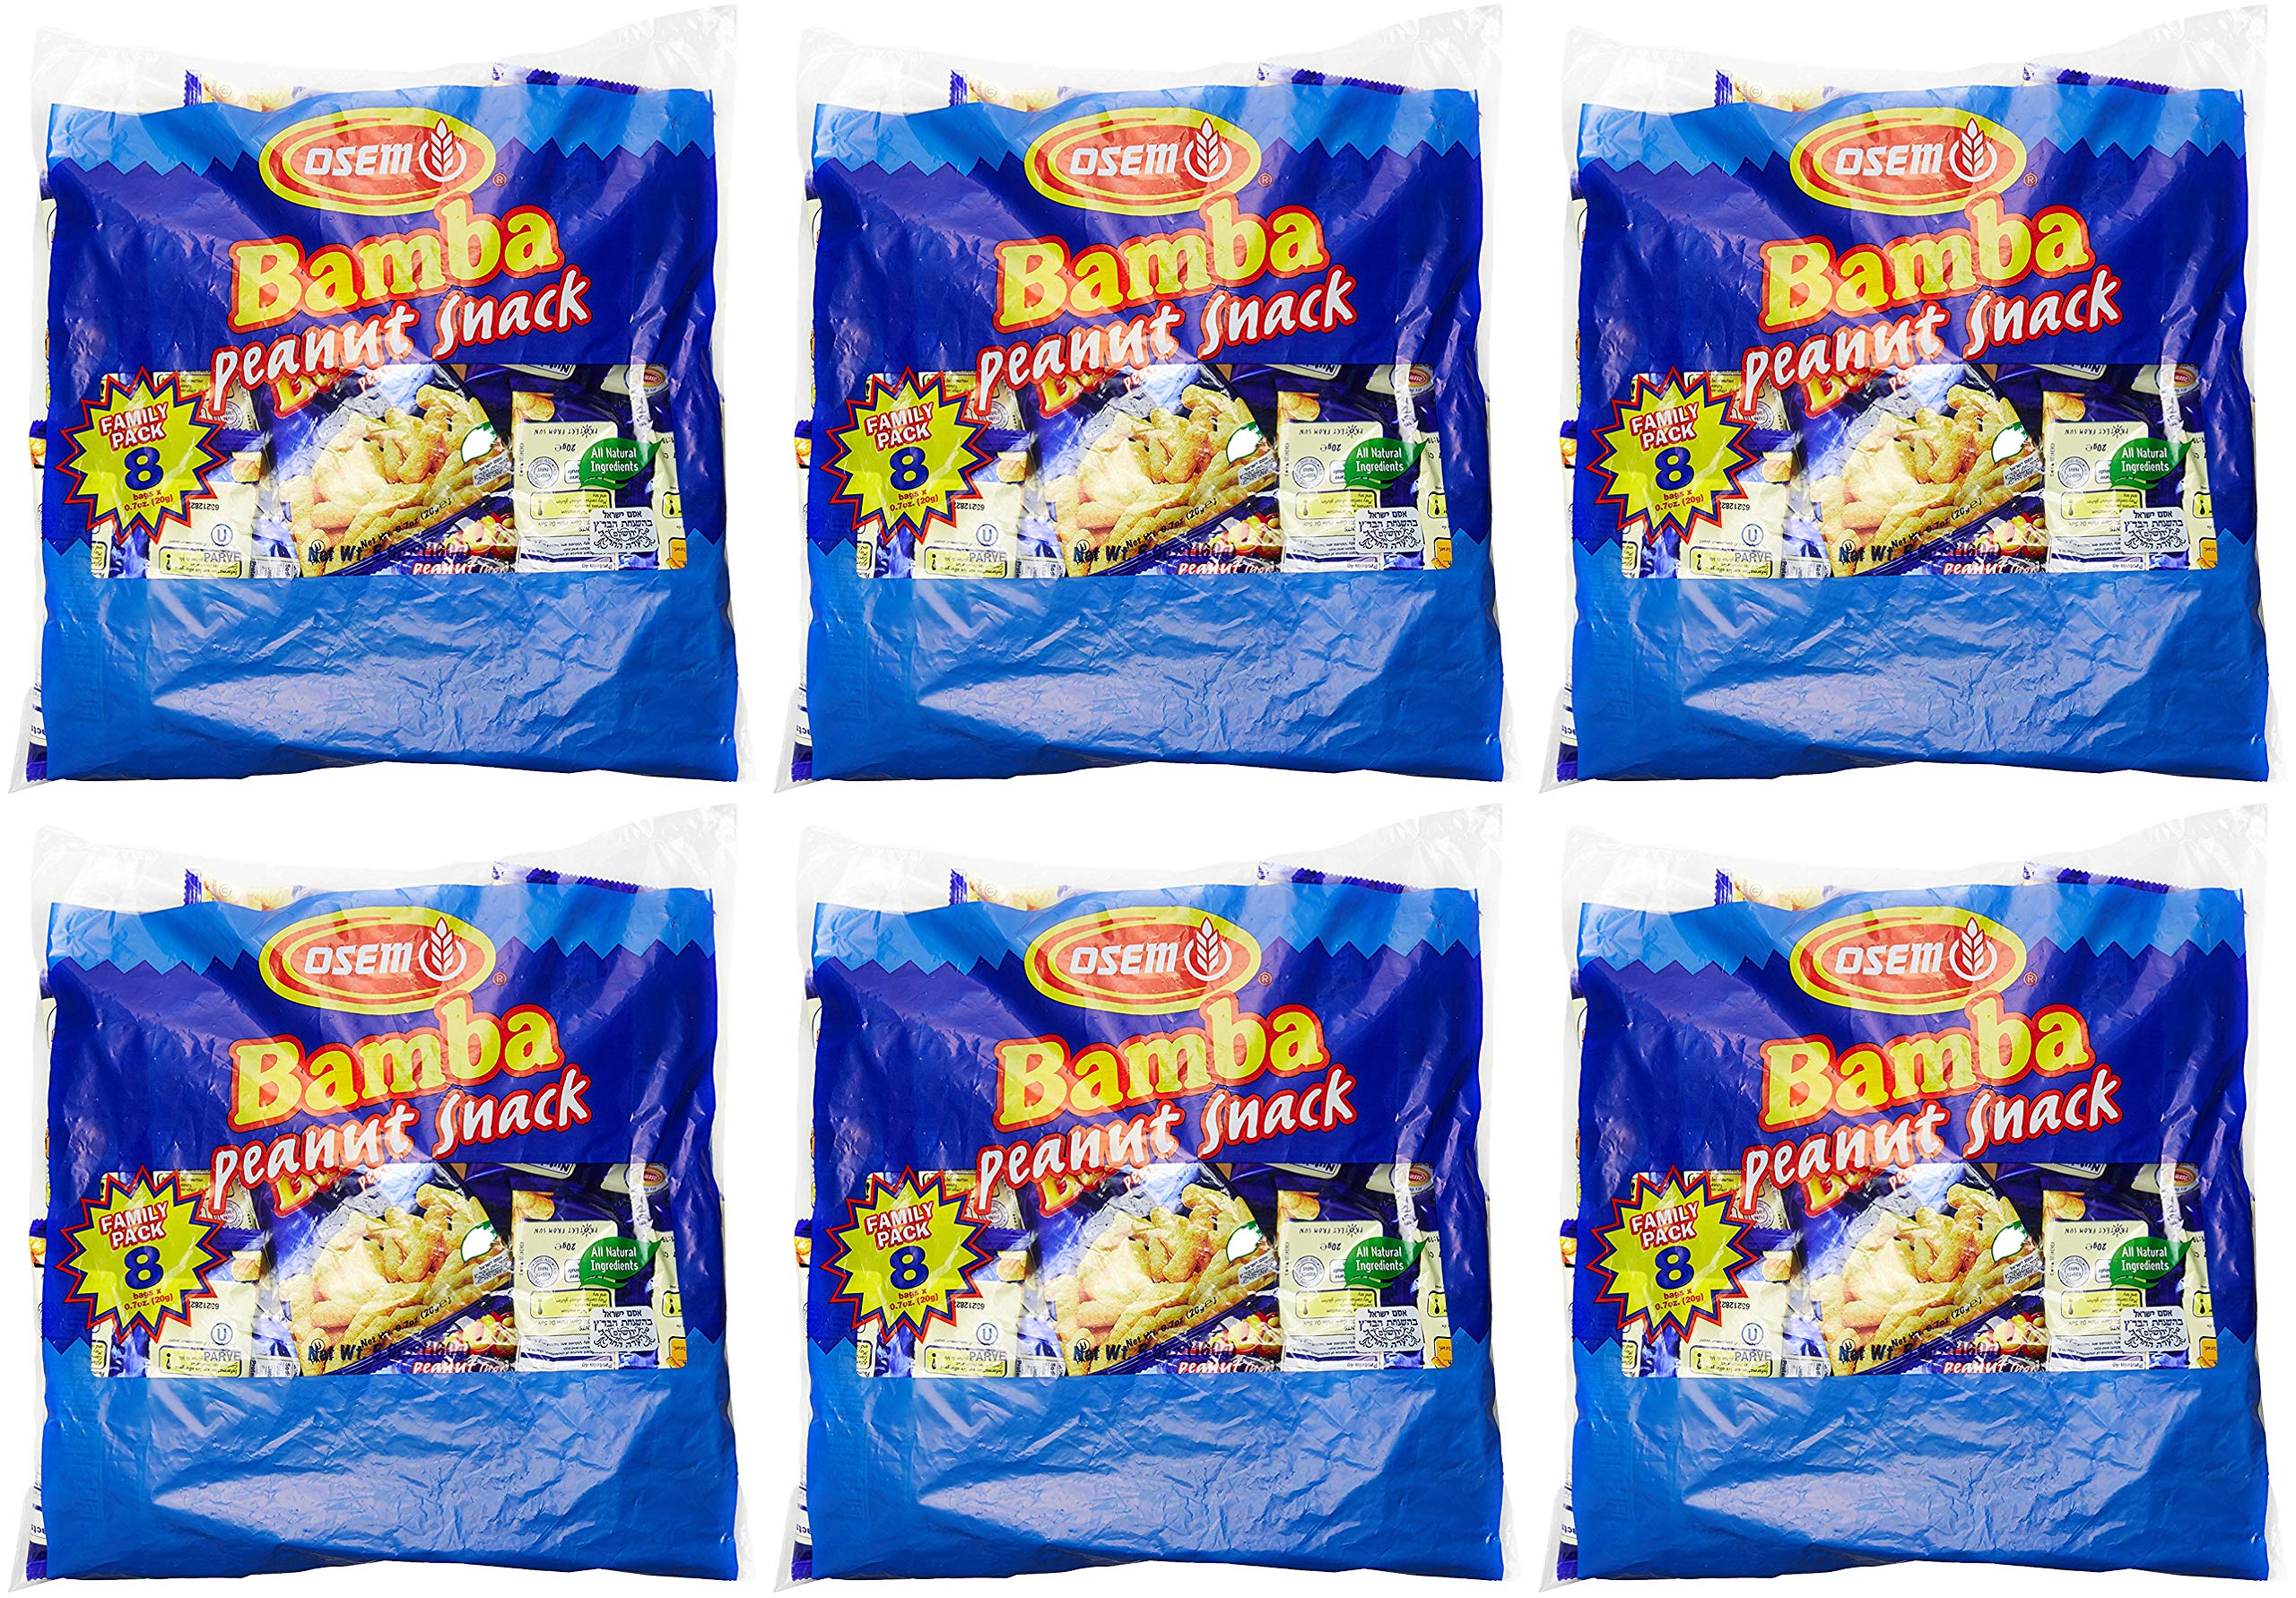 Bamba Peanut Butter Snacks All Natural Peanut Butter Corn Puff Snack (6 Family Packs) (Pack of 8 x 0.7oz Bags) by Osem